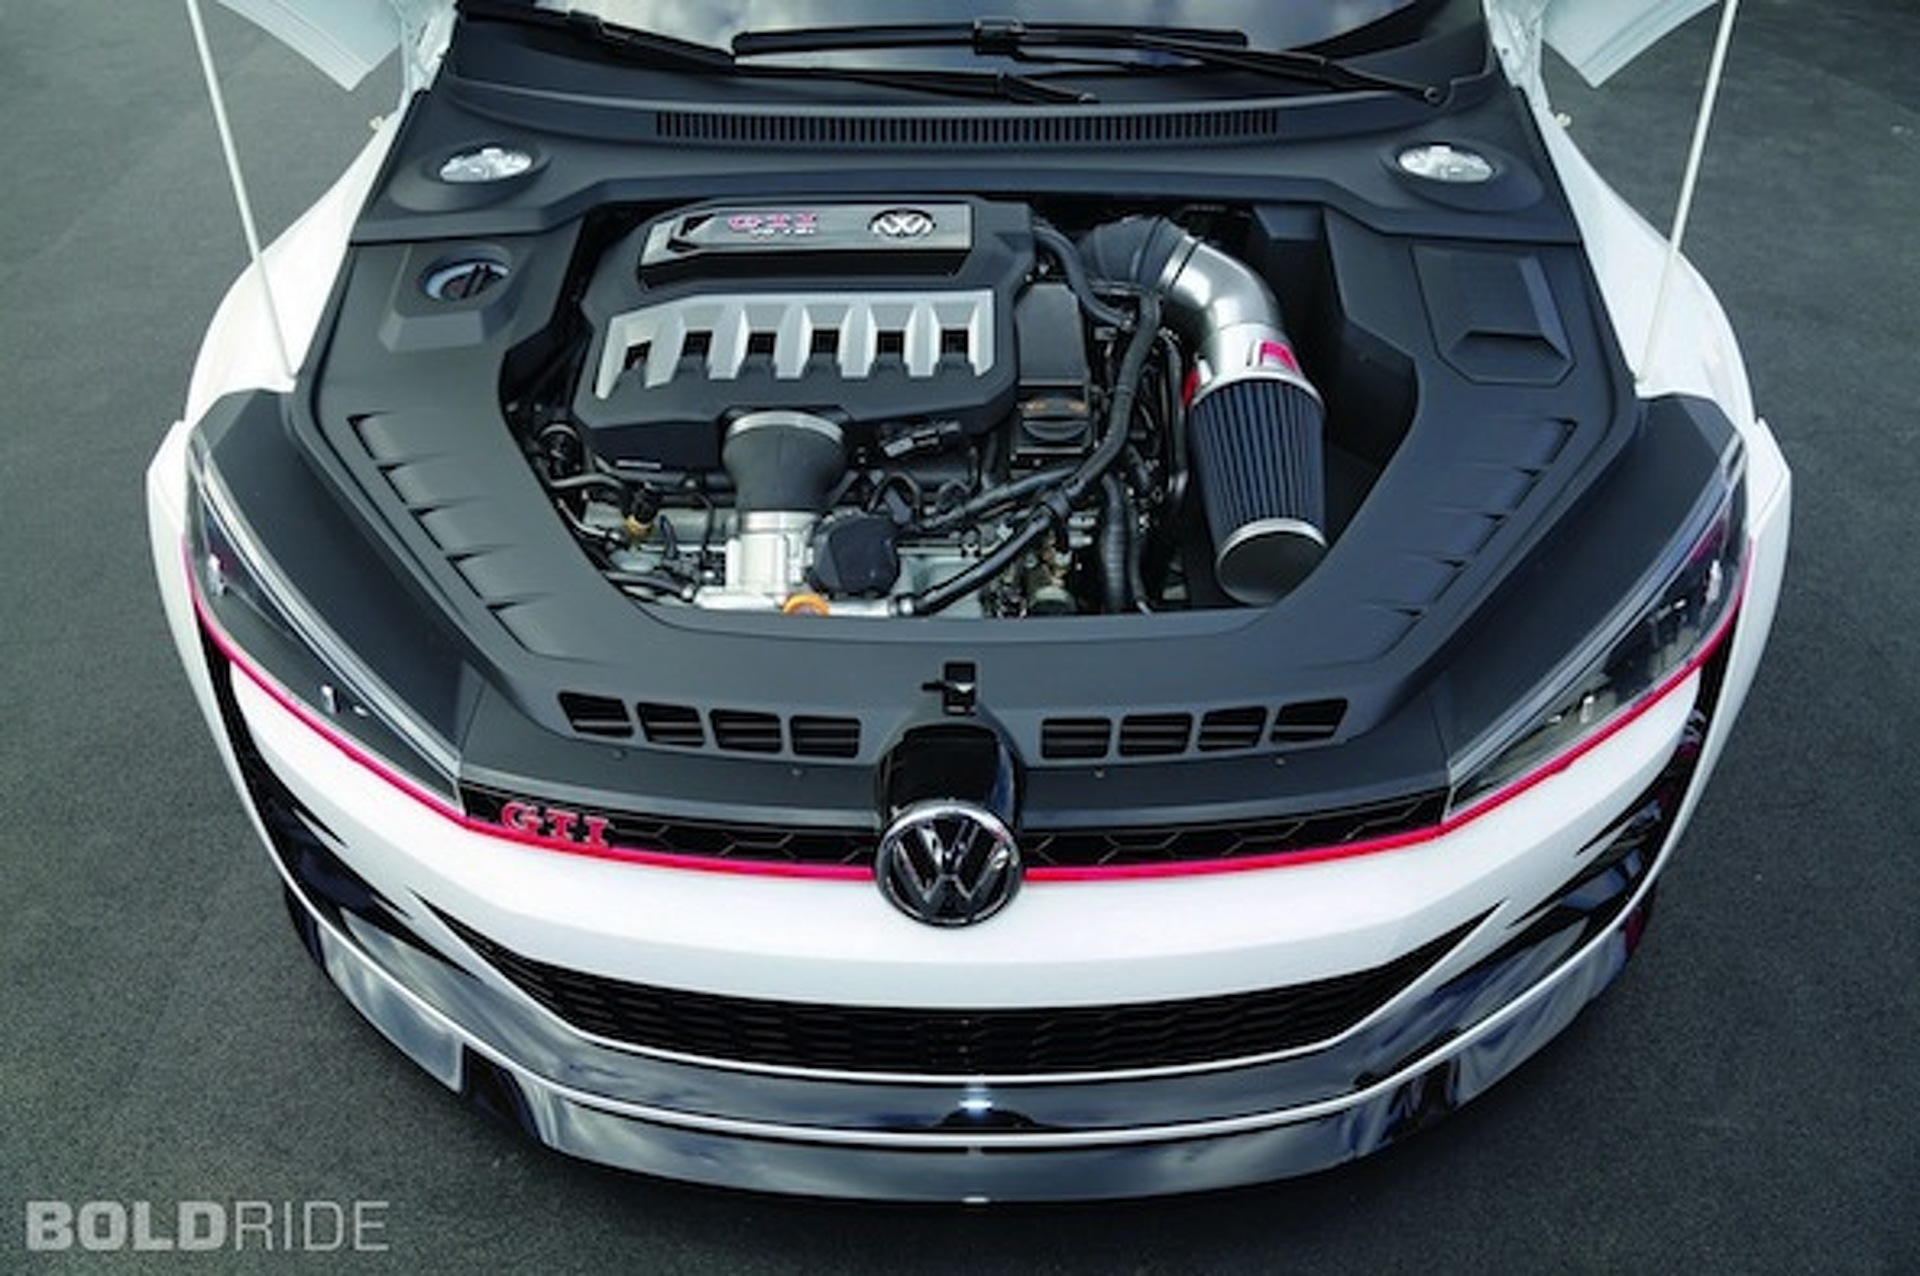 Bold RIde of the Week: Volkswagen Design Vision GTI